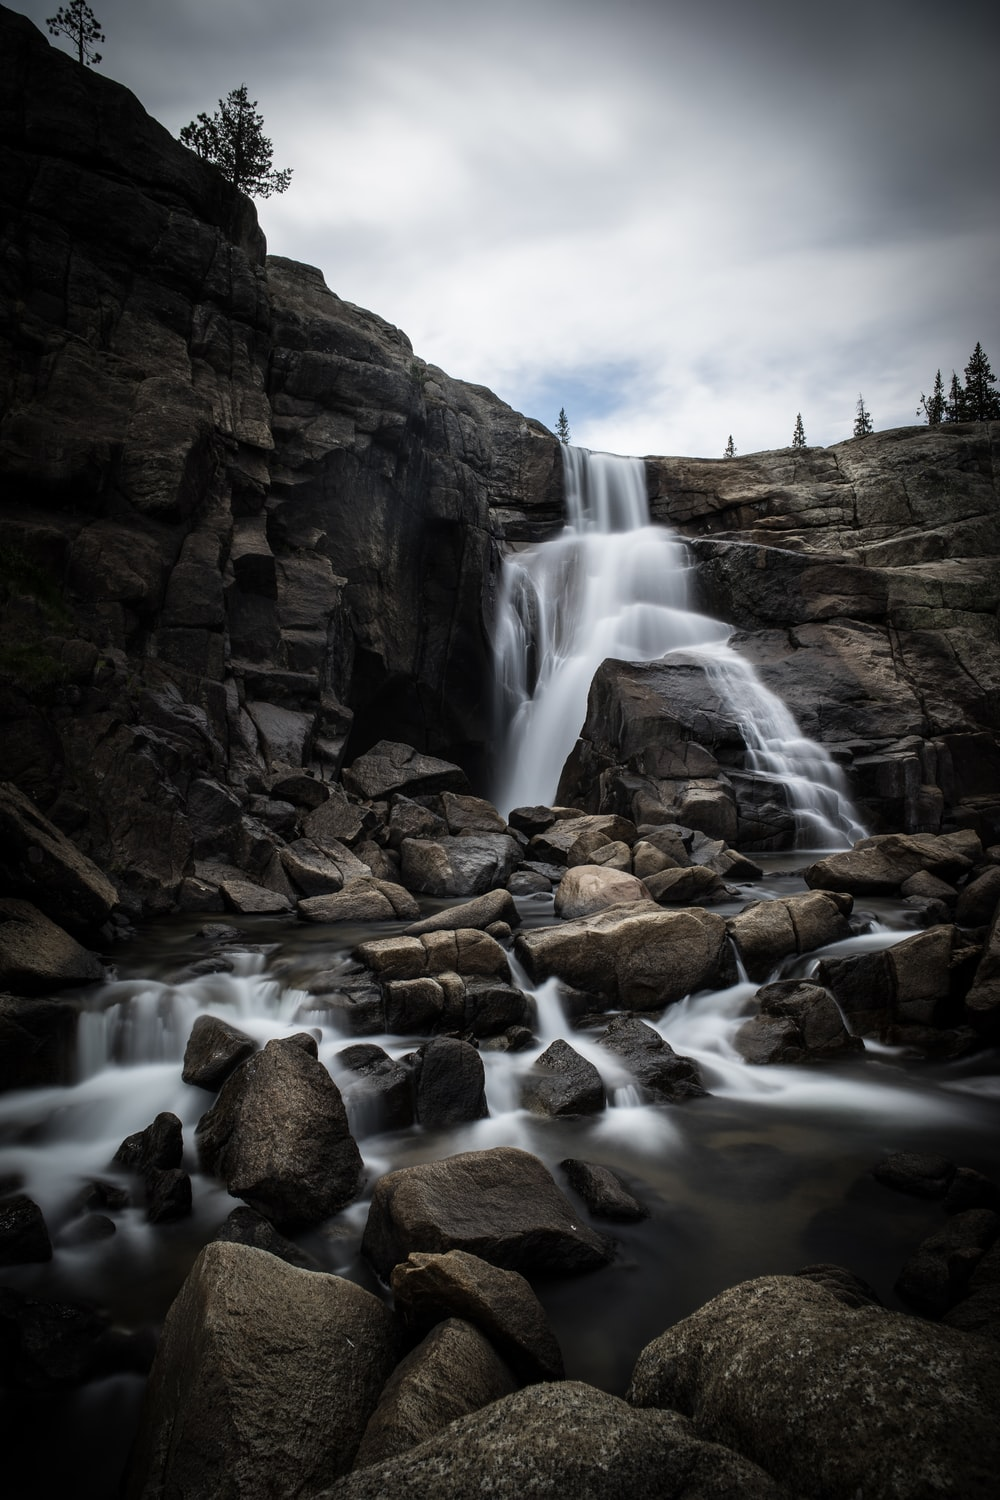 waterfalls on rocky mountain under cloudy sky during daytime